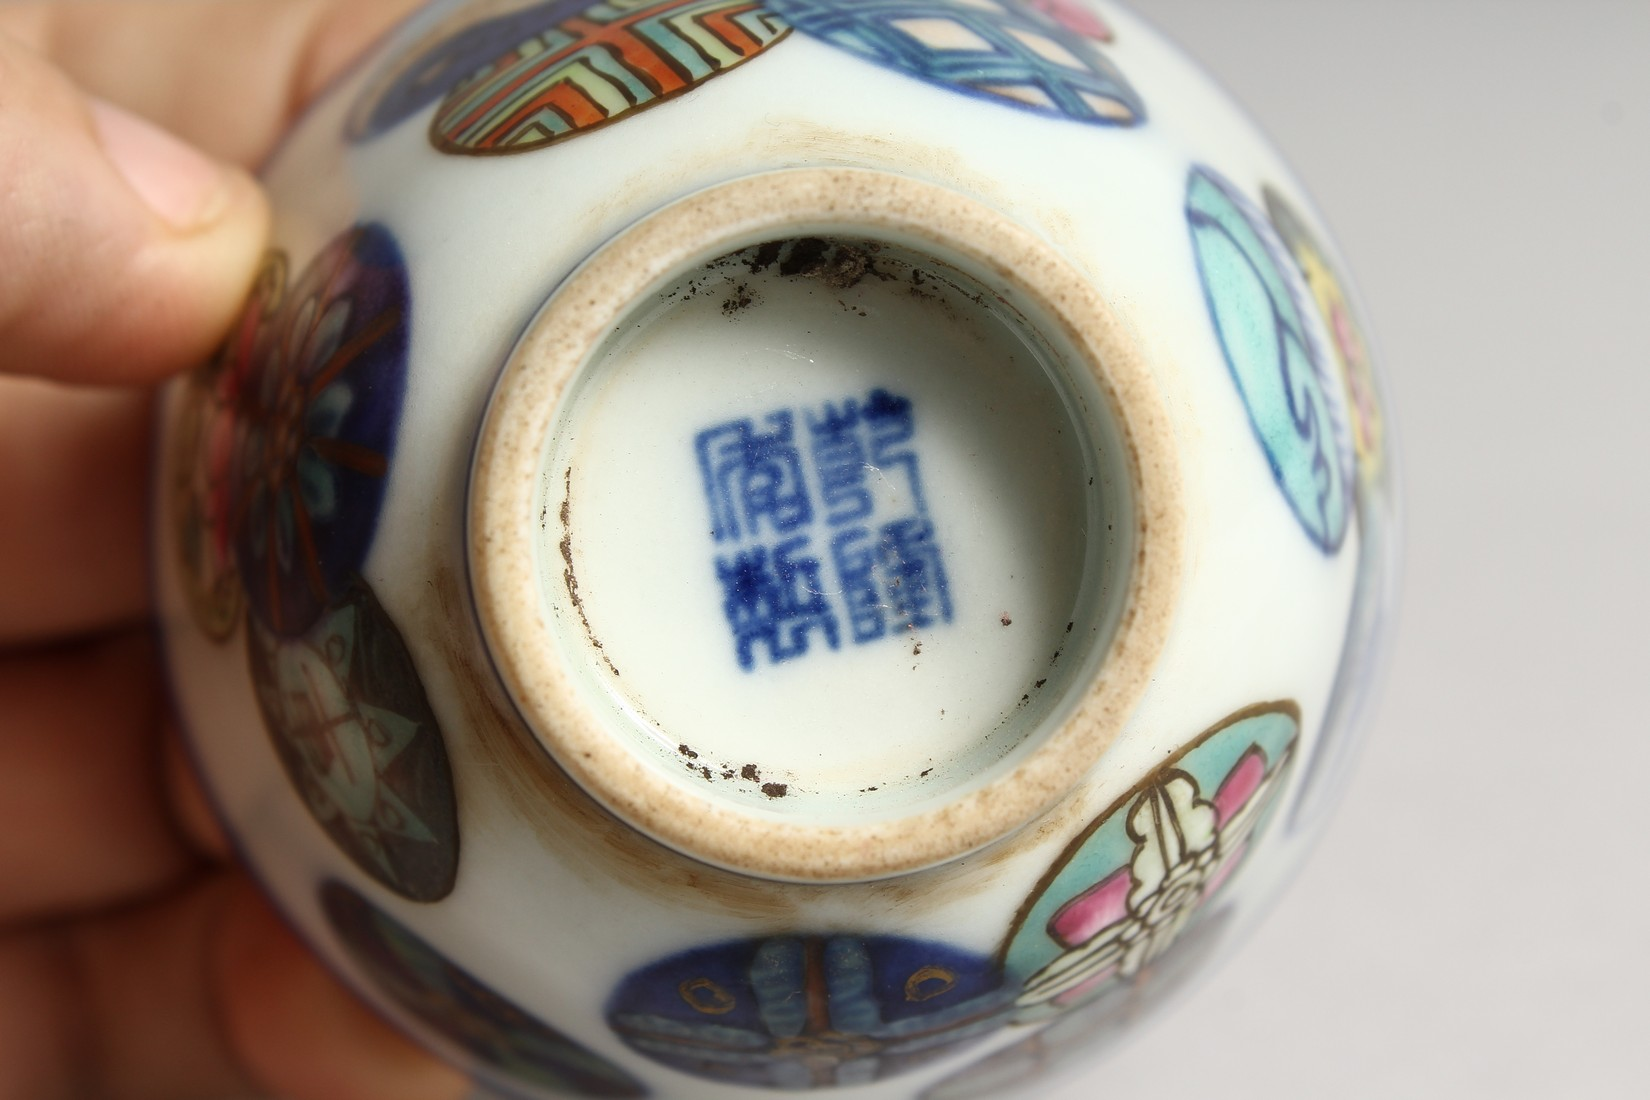 A SMALL CHINESE PORCELAIN RICE BOWL 2.75ins diameter. - Image 5 of 5